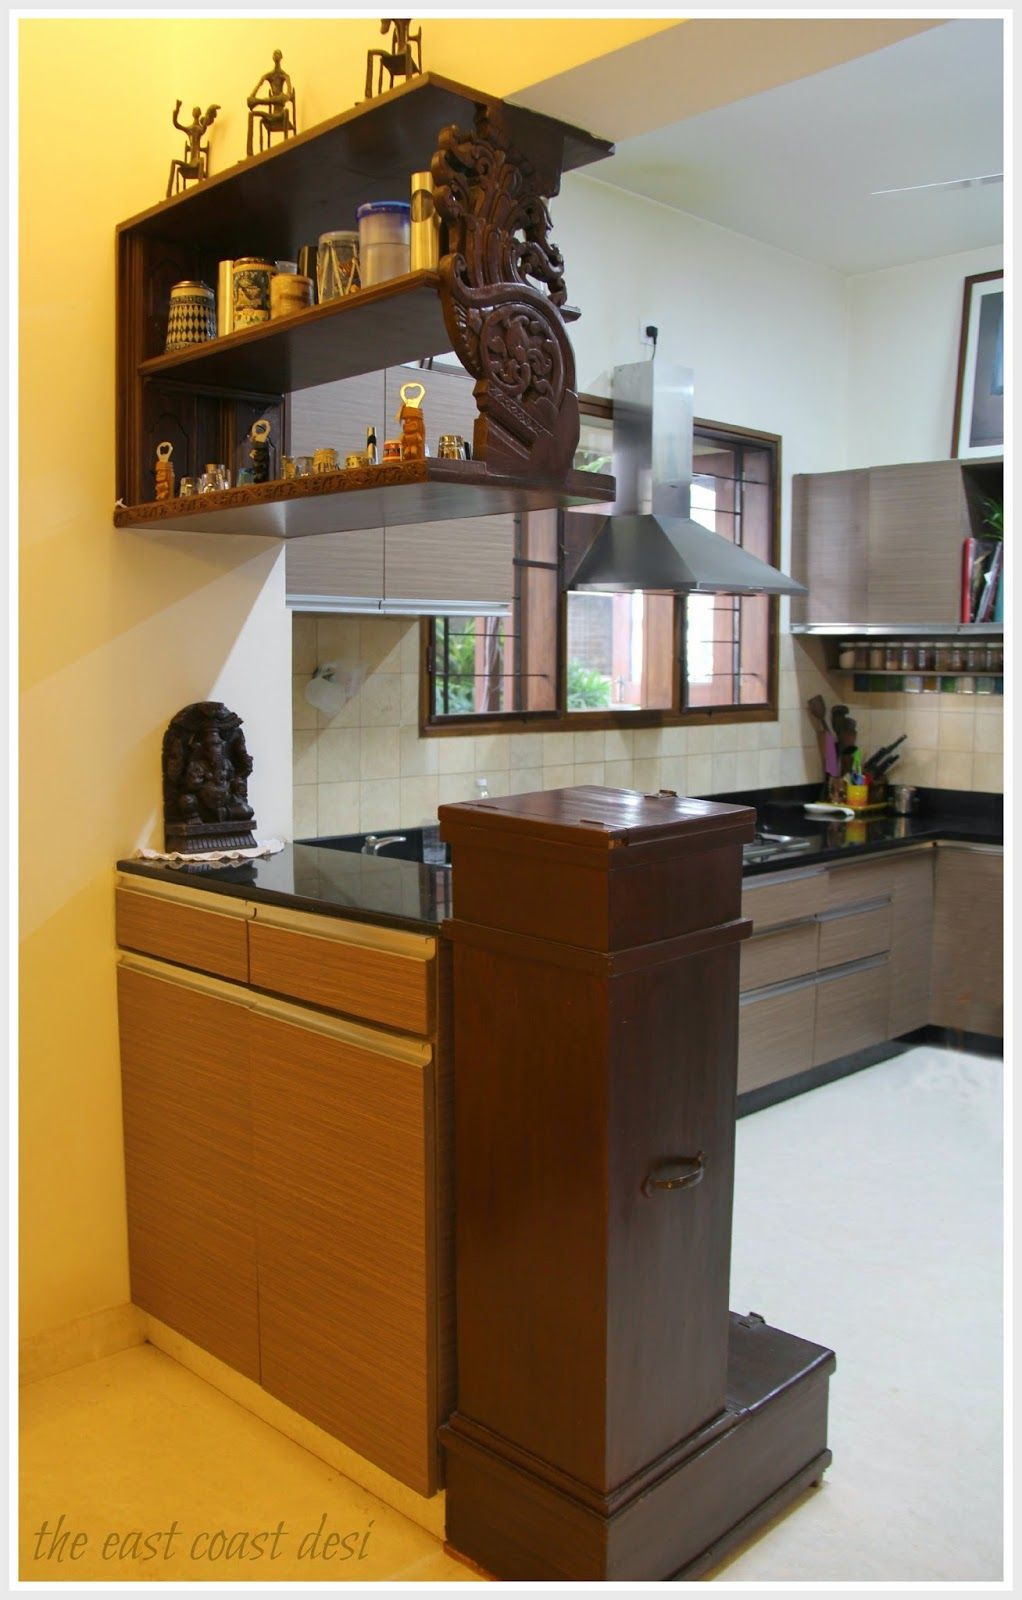 cheers to new avenues kitchen cabinet remodel kitchen design new kitchen designs on e kitchen ideas id=14040